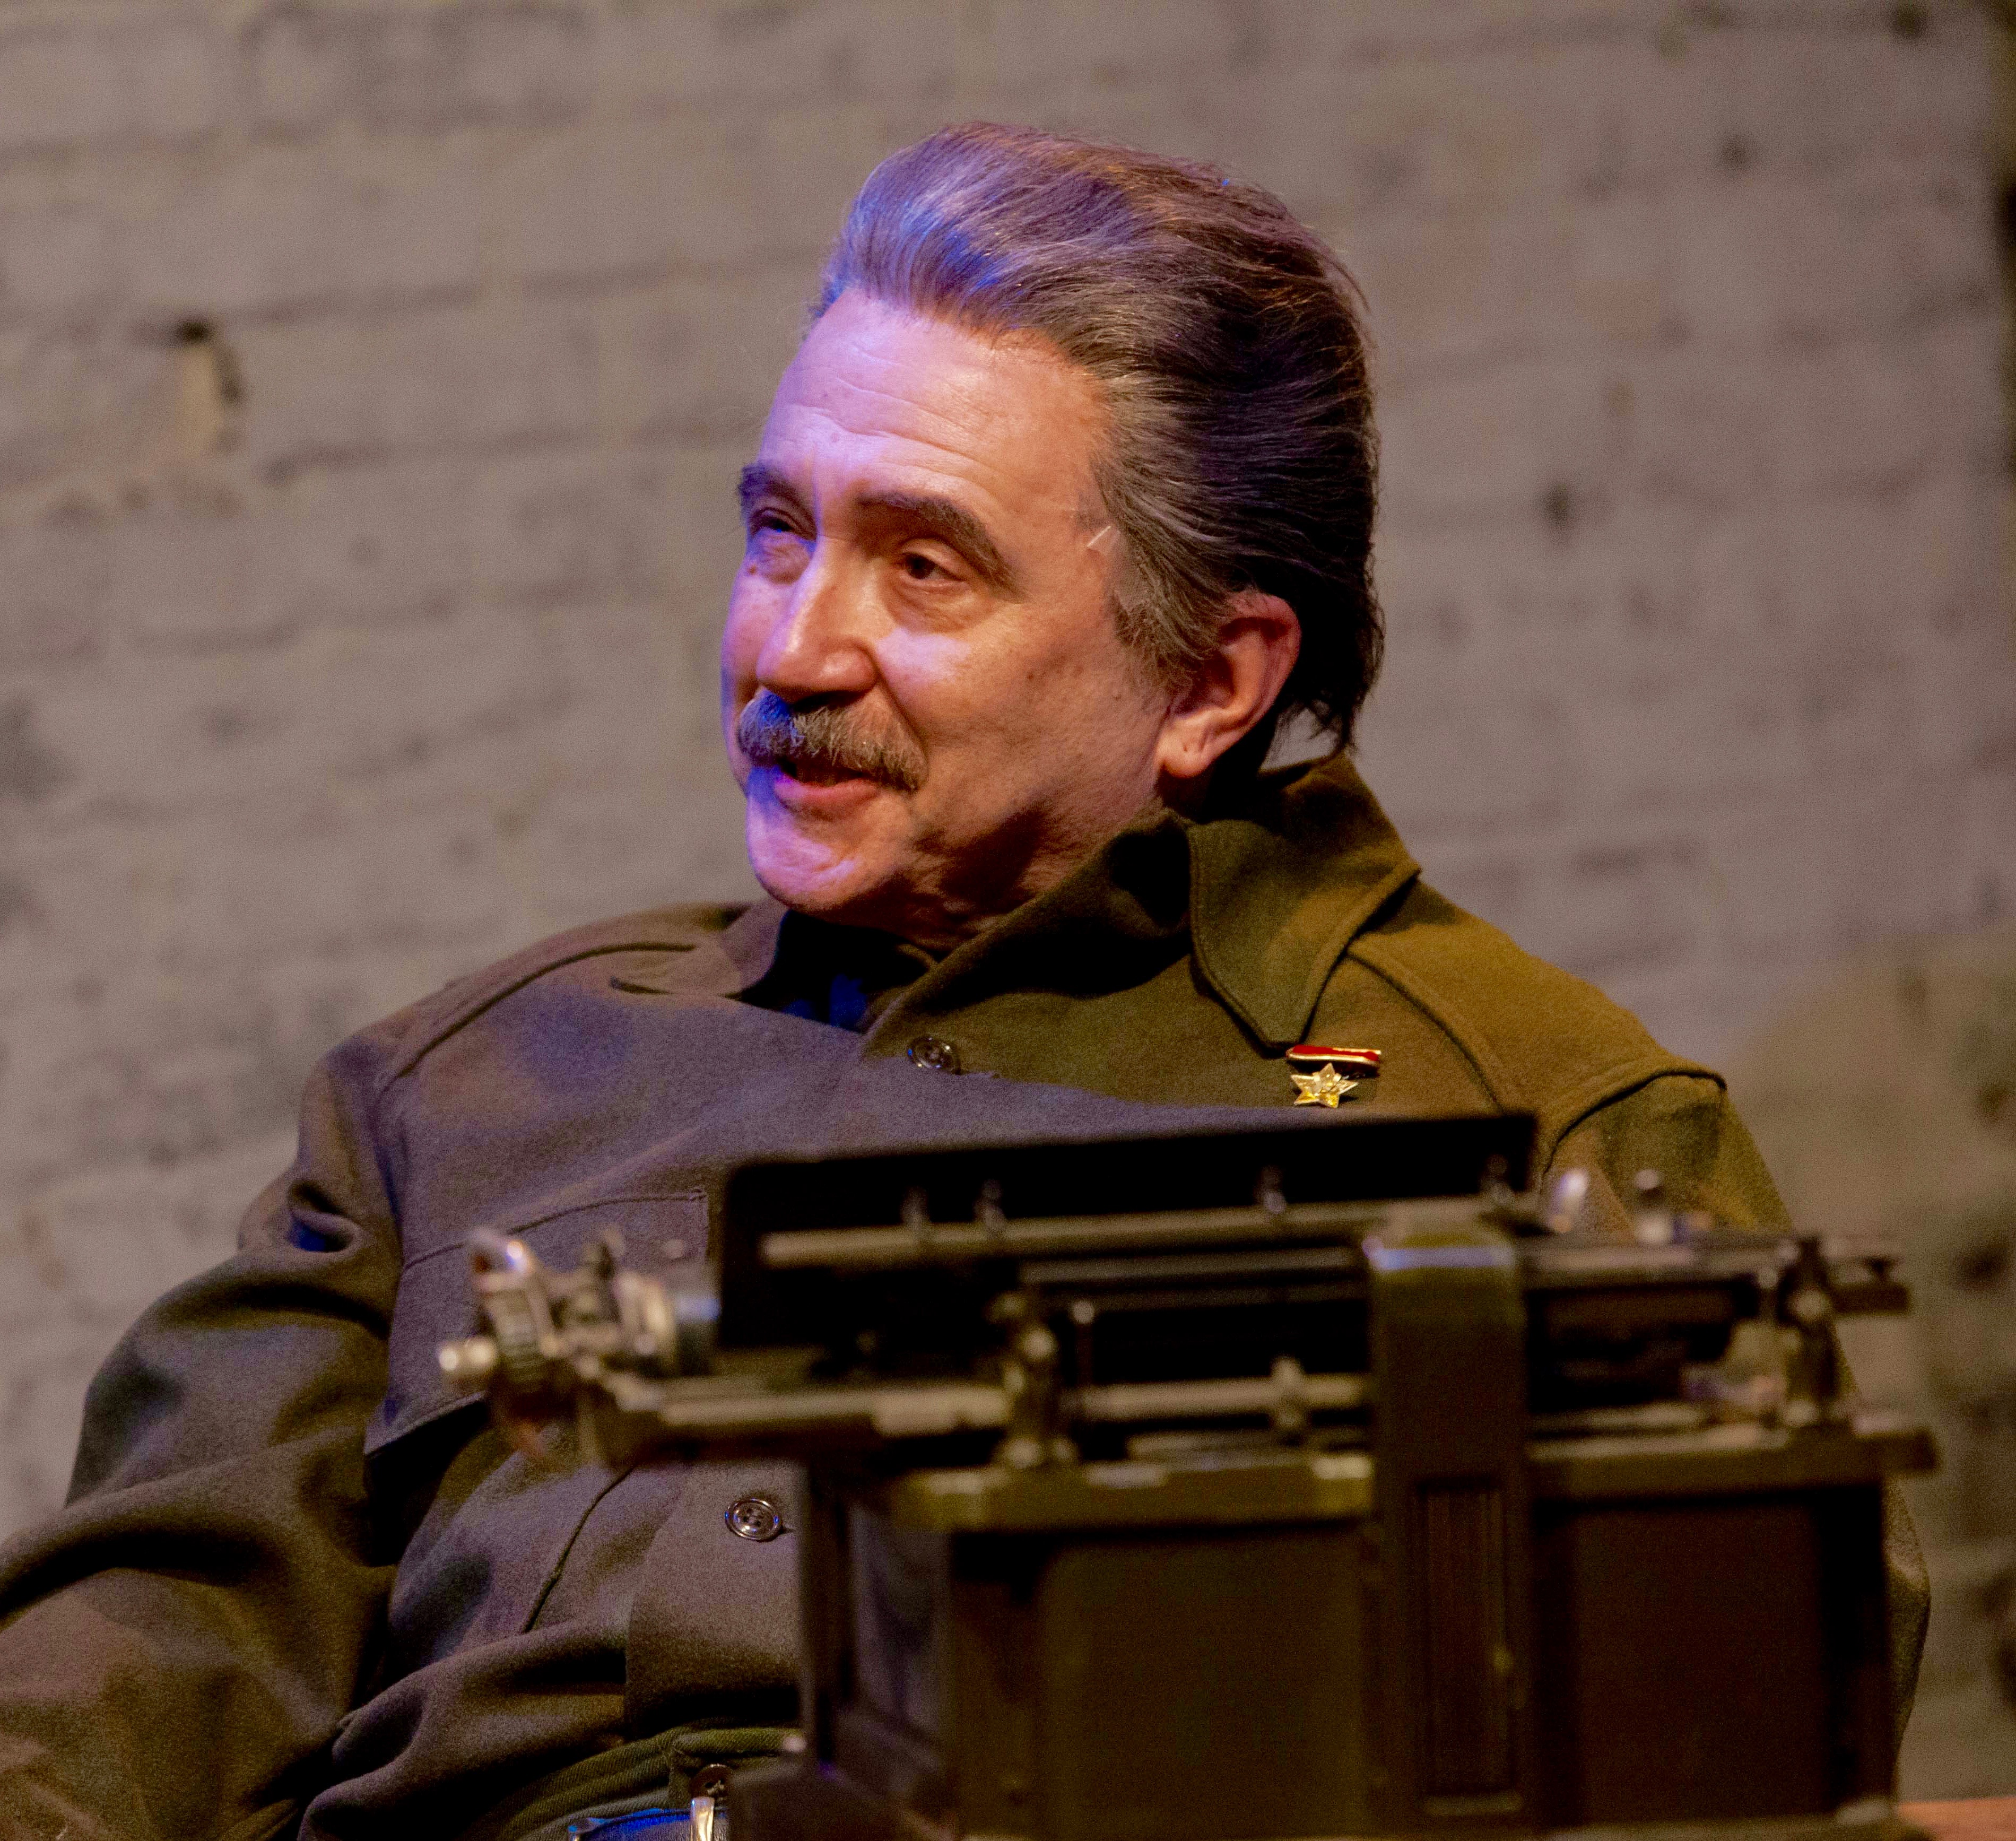 Martin Giles, who's played some creepy roles in his day, gets to creep with the creepiest as Joseph Stalin.